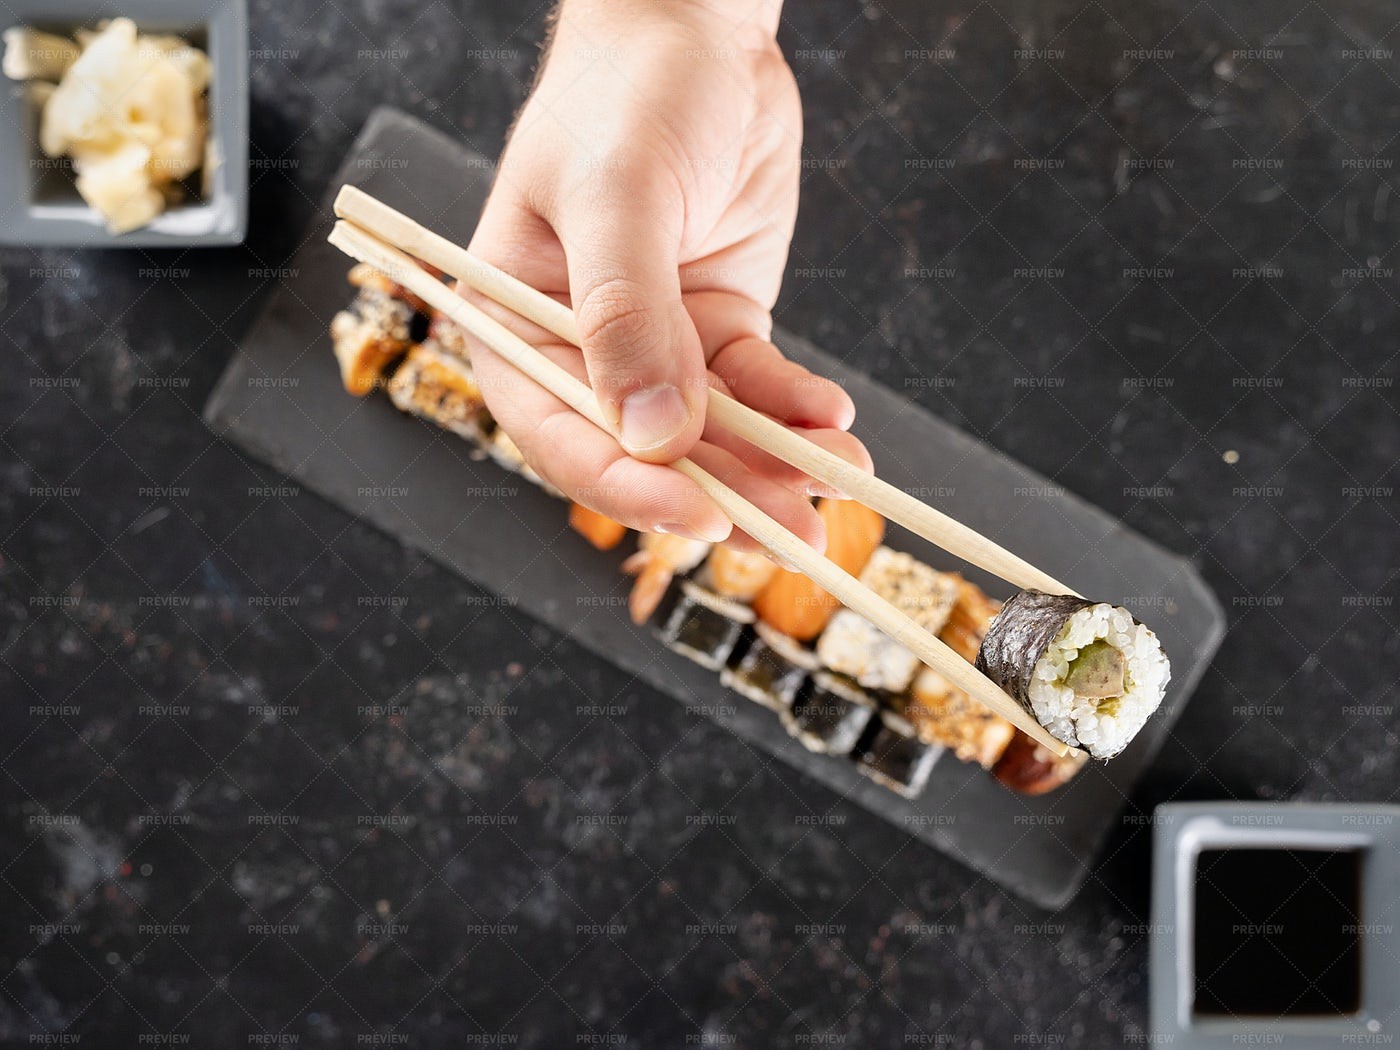 Picking A Sushi Roll: Stock Photos